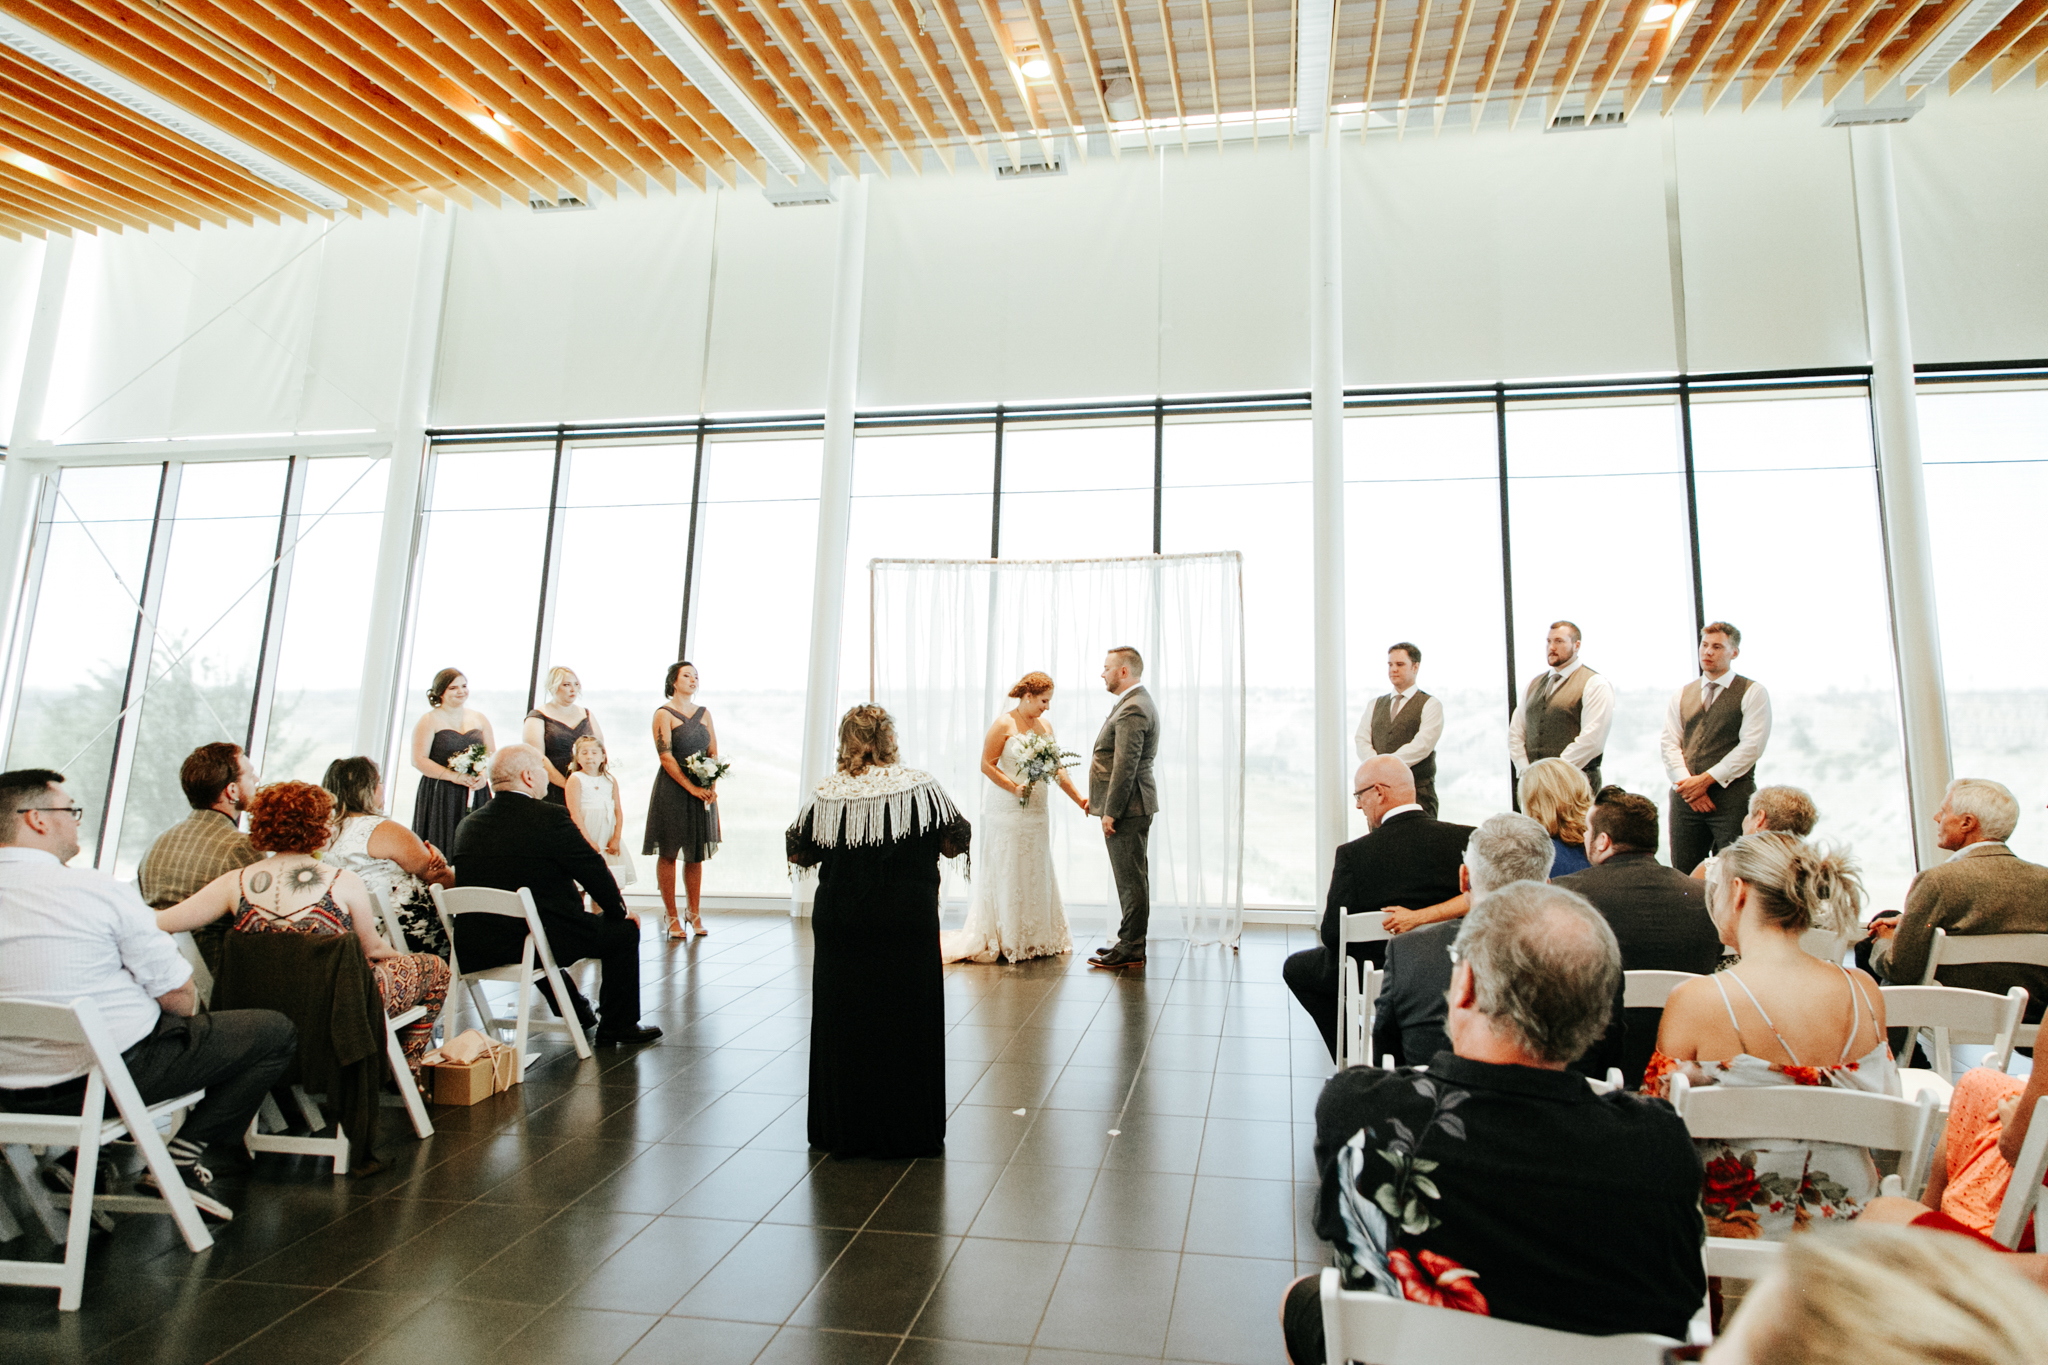 lethbridge-wedding-photographer-love-and-be-loved-photography-trent-danielle-galt-reception-picture-image-photo-57.jpg